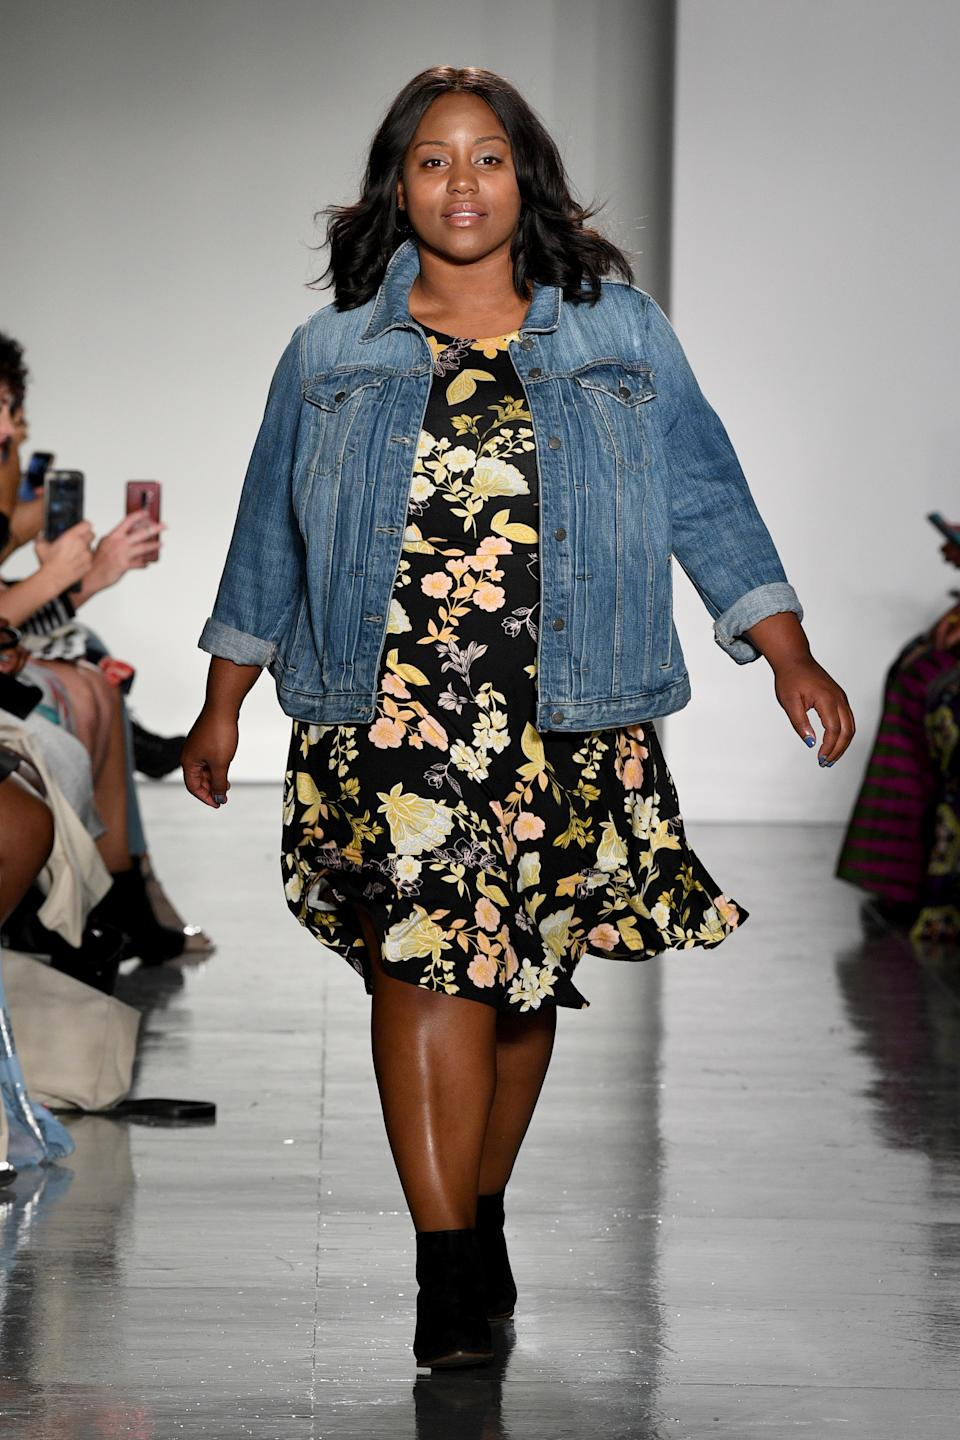 Gess Pugh walks the runway at the Loft Fashion Show during theCURVYcon Powered By Dia&Co (Getty Images).